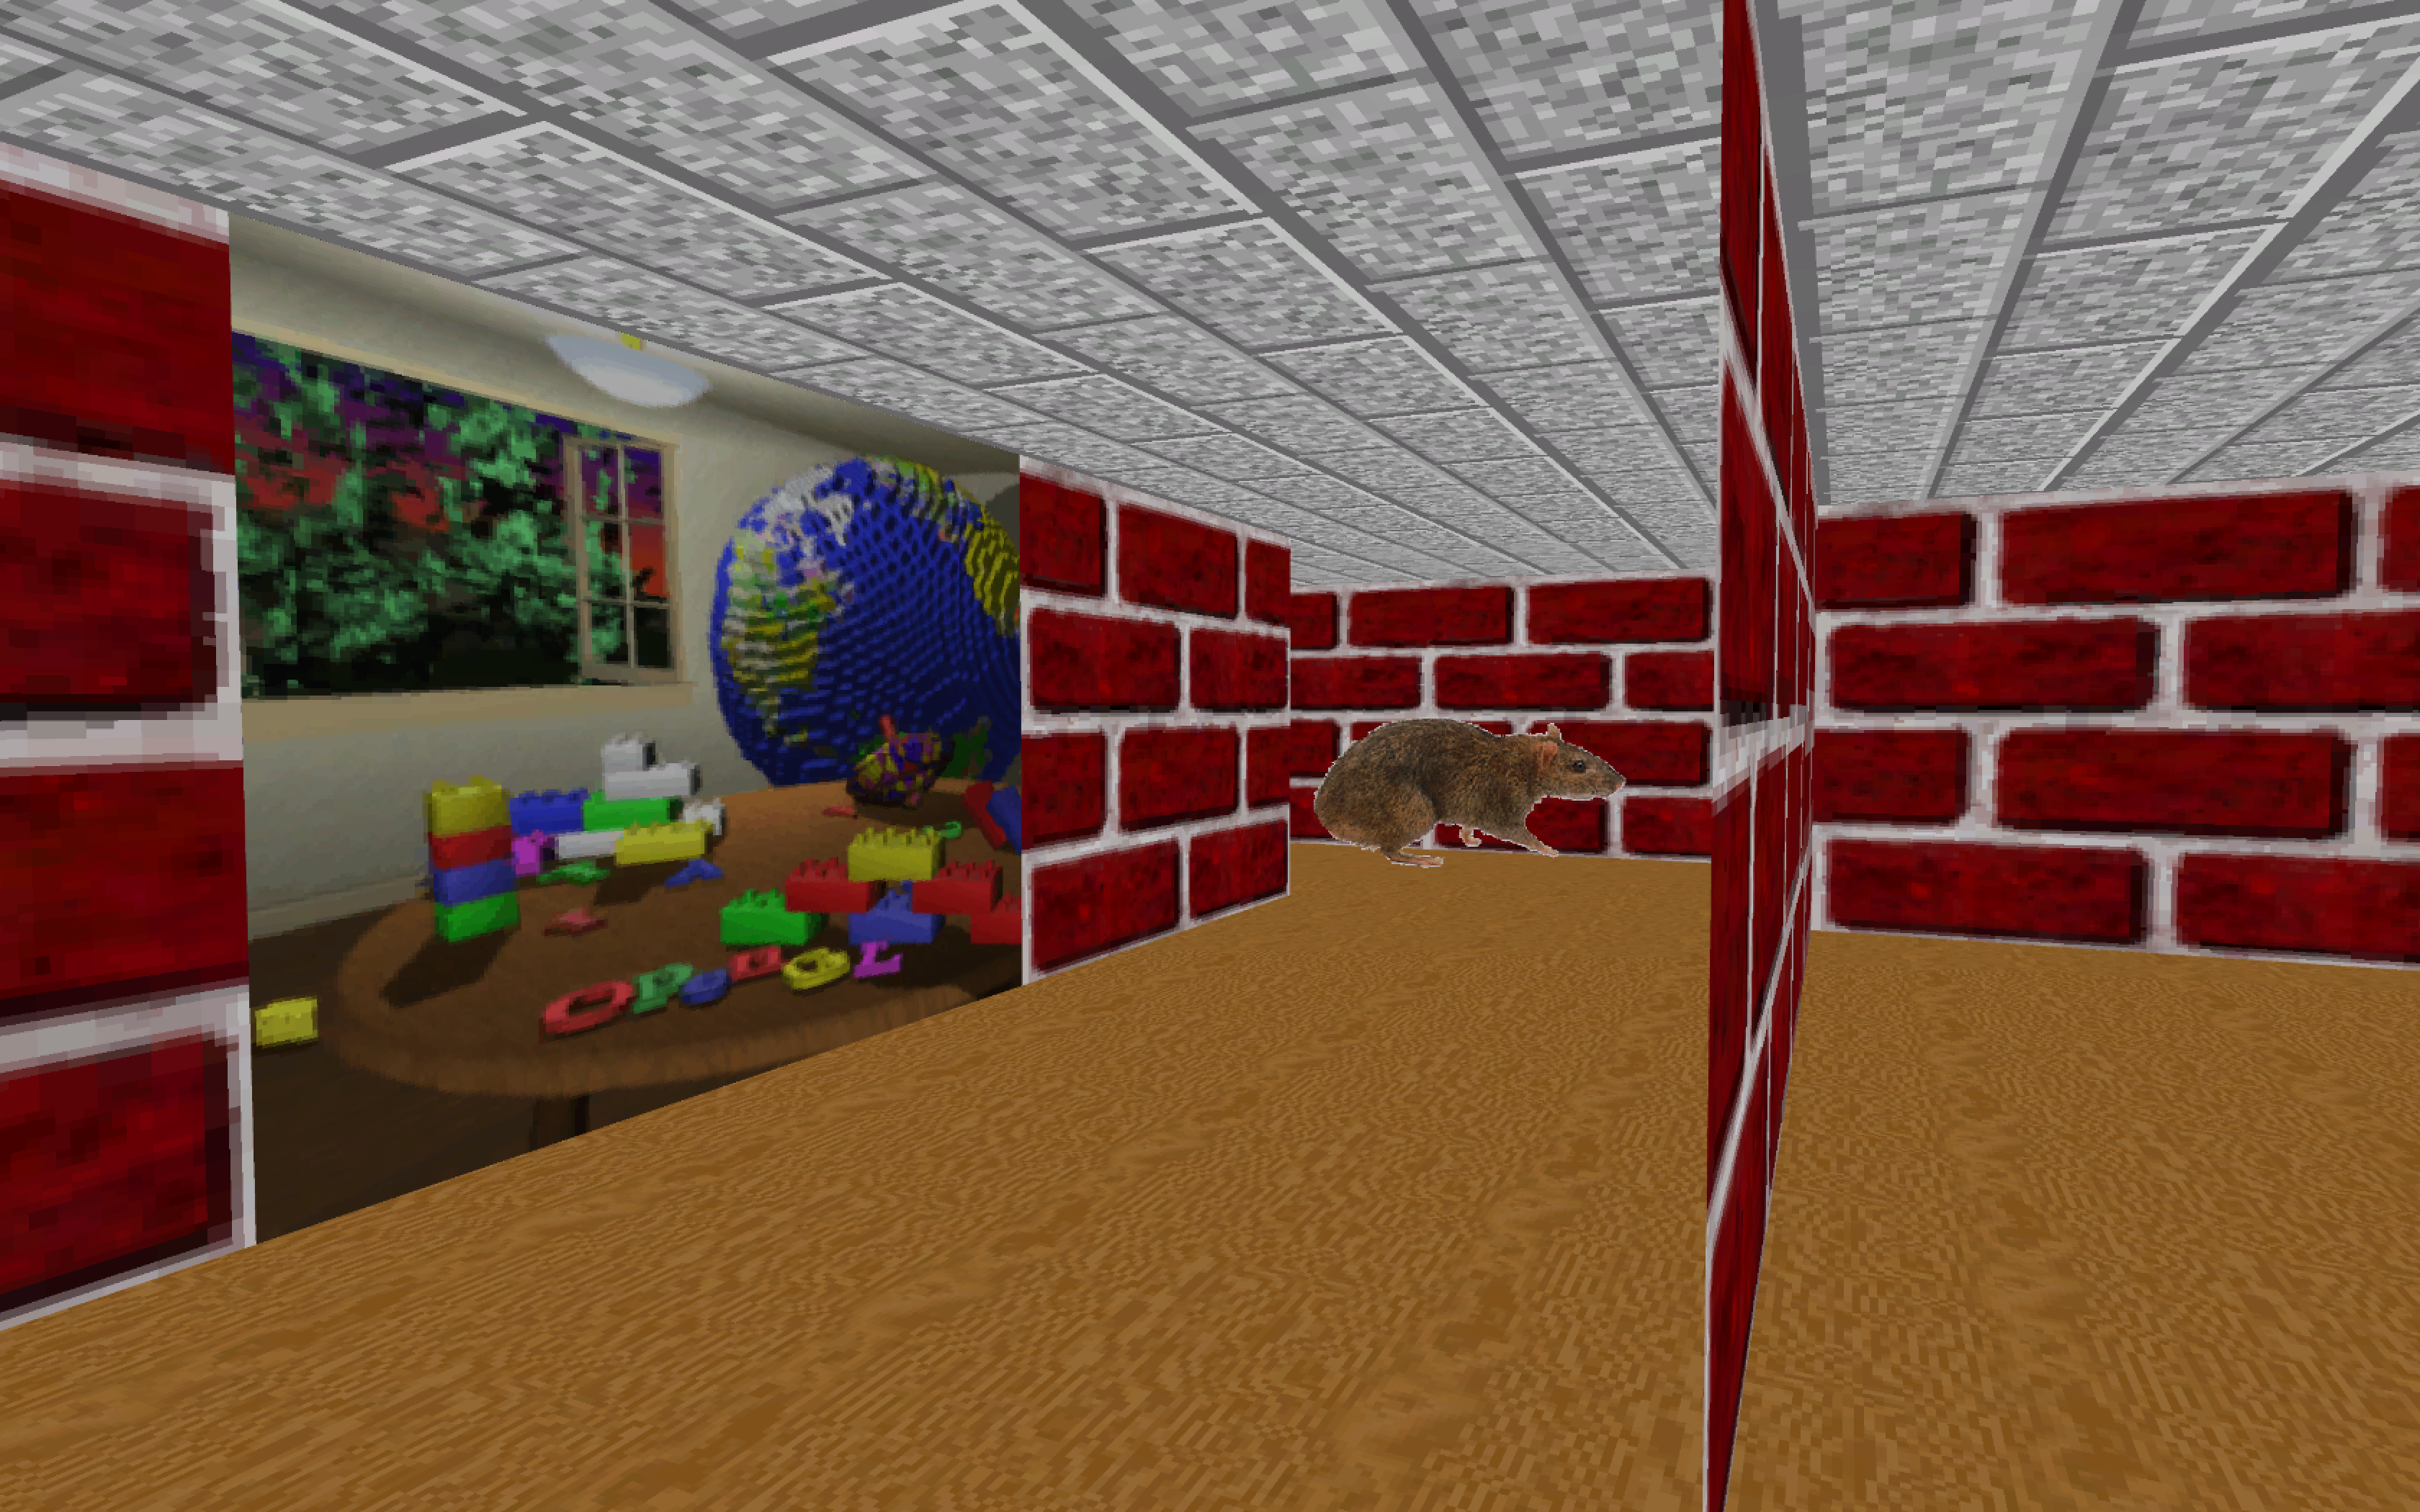 The dream of the '90s is alive in this Windows 95 screensaver indie